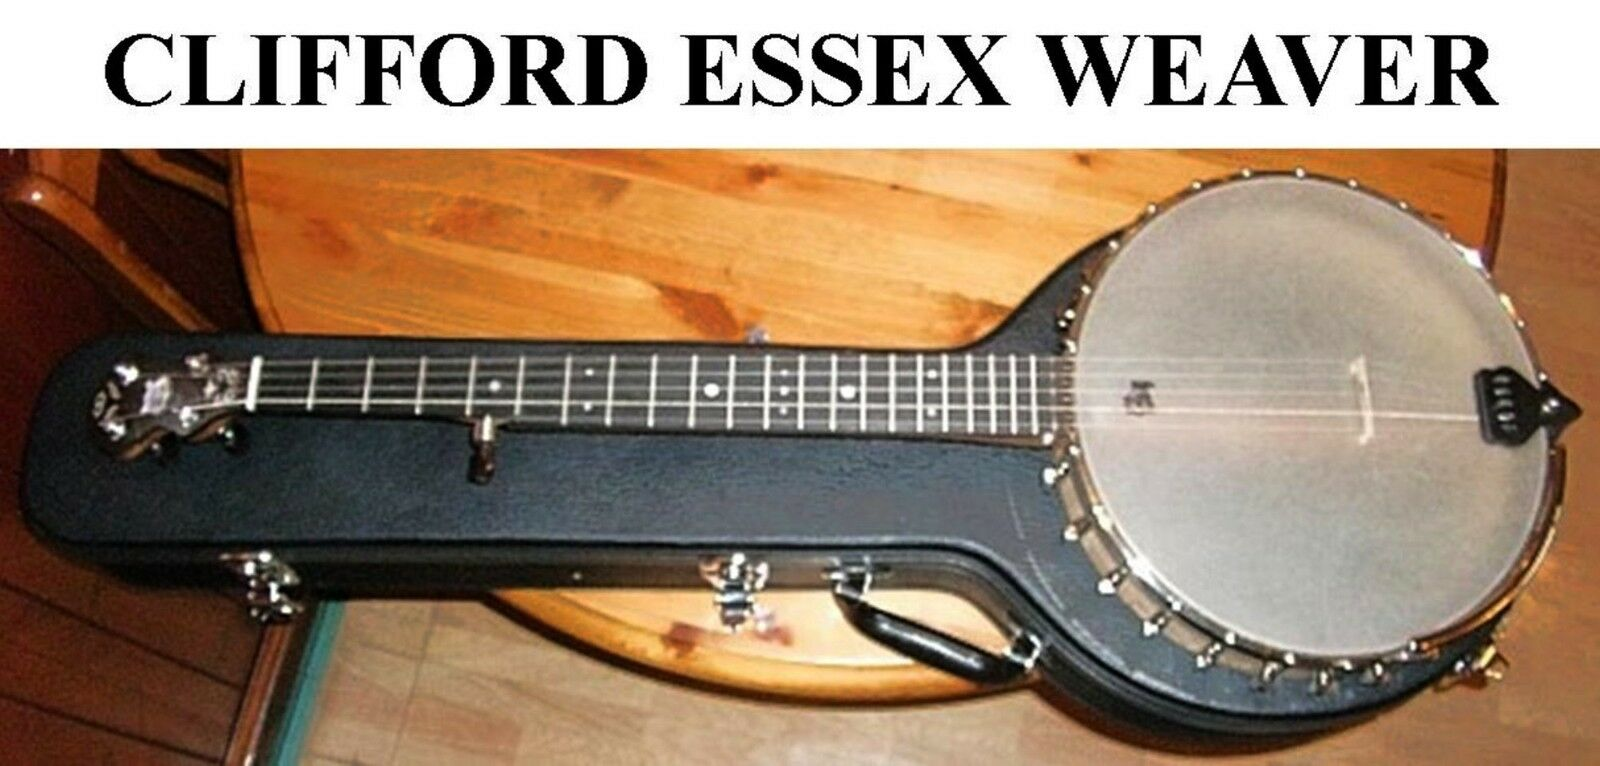 CLASSICAL BANJO STRINGS THE PROFESSIONAL/'S CHOICE THE BEST. CLIFFORD ESSEX